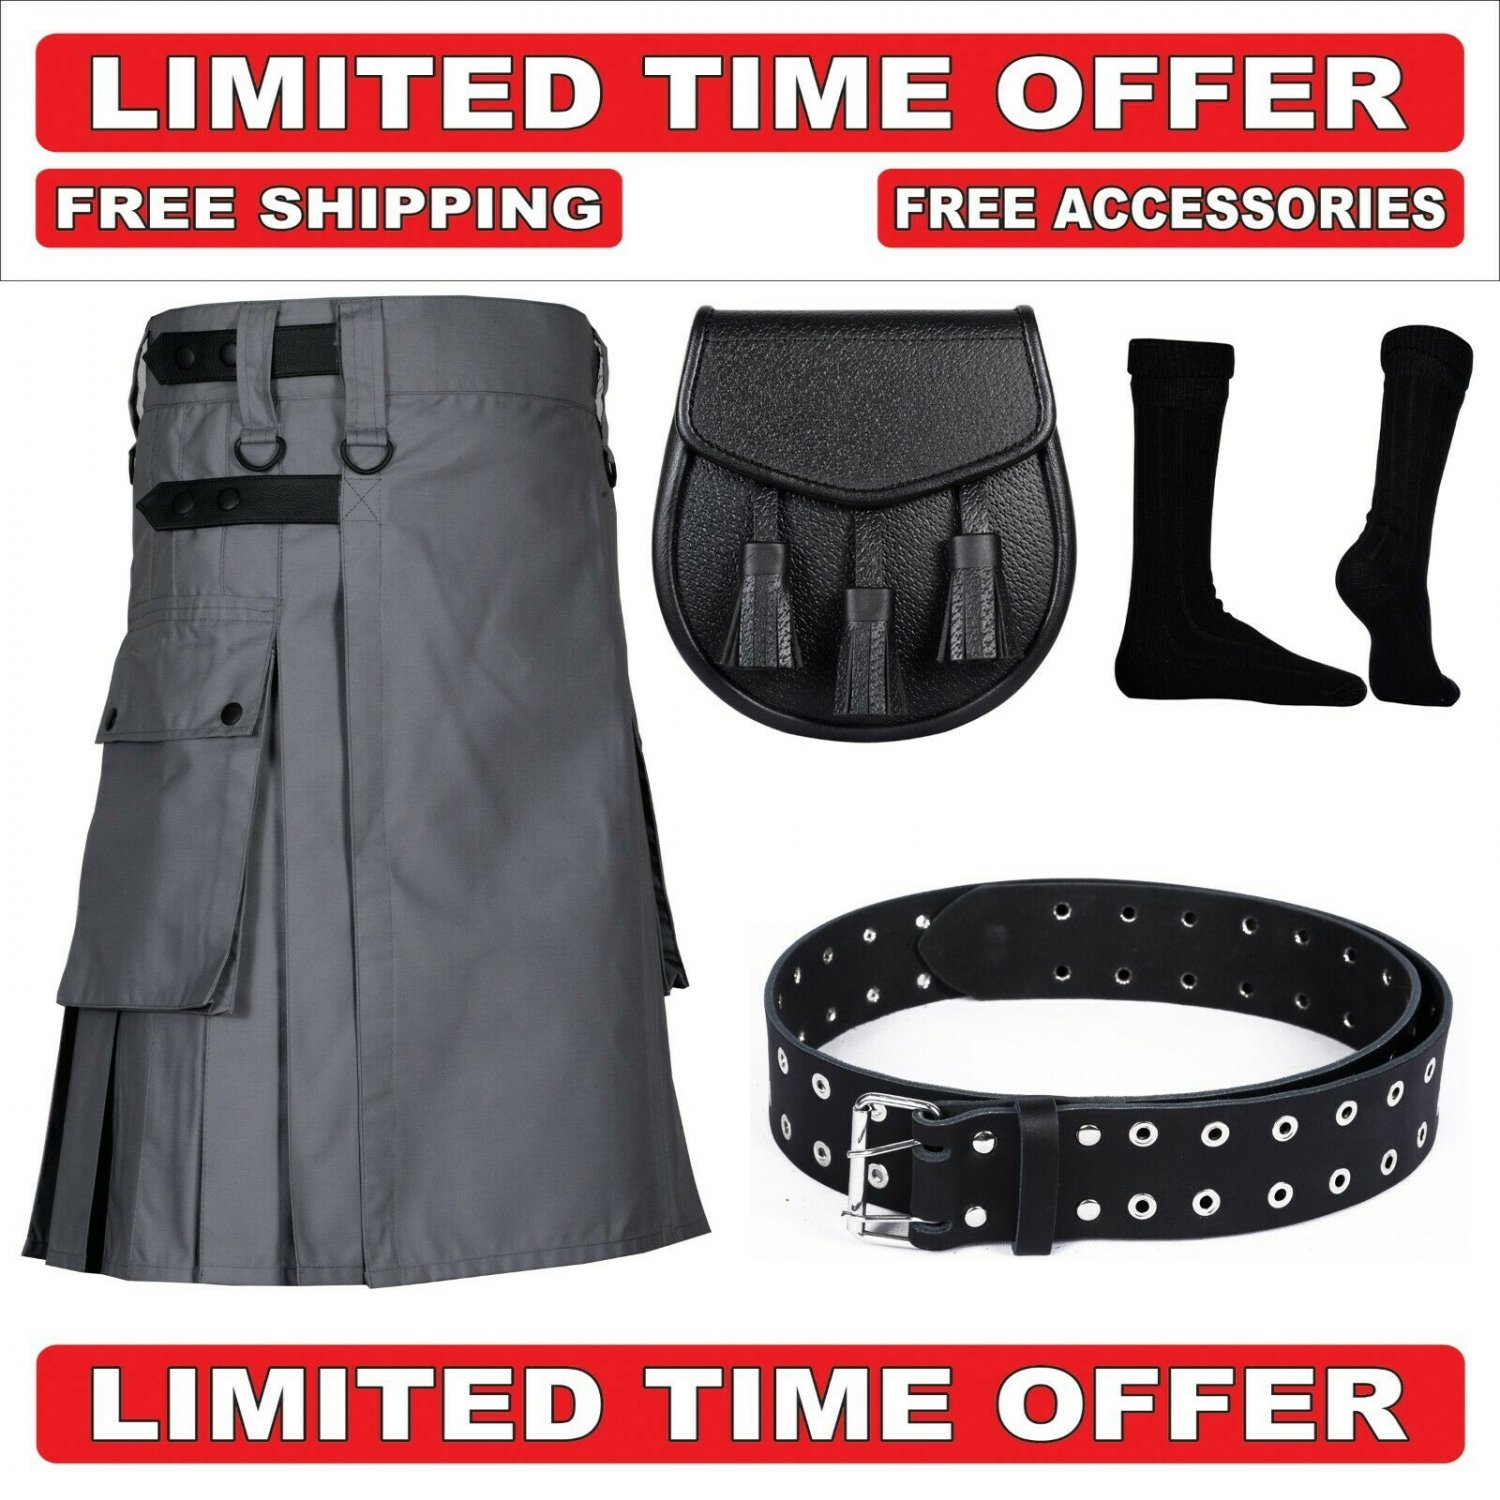 60 size grey Men's Cotton Utility Scottish Kilt With Free Accessories and Free Shipping